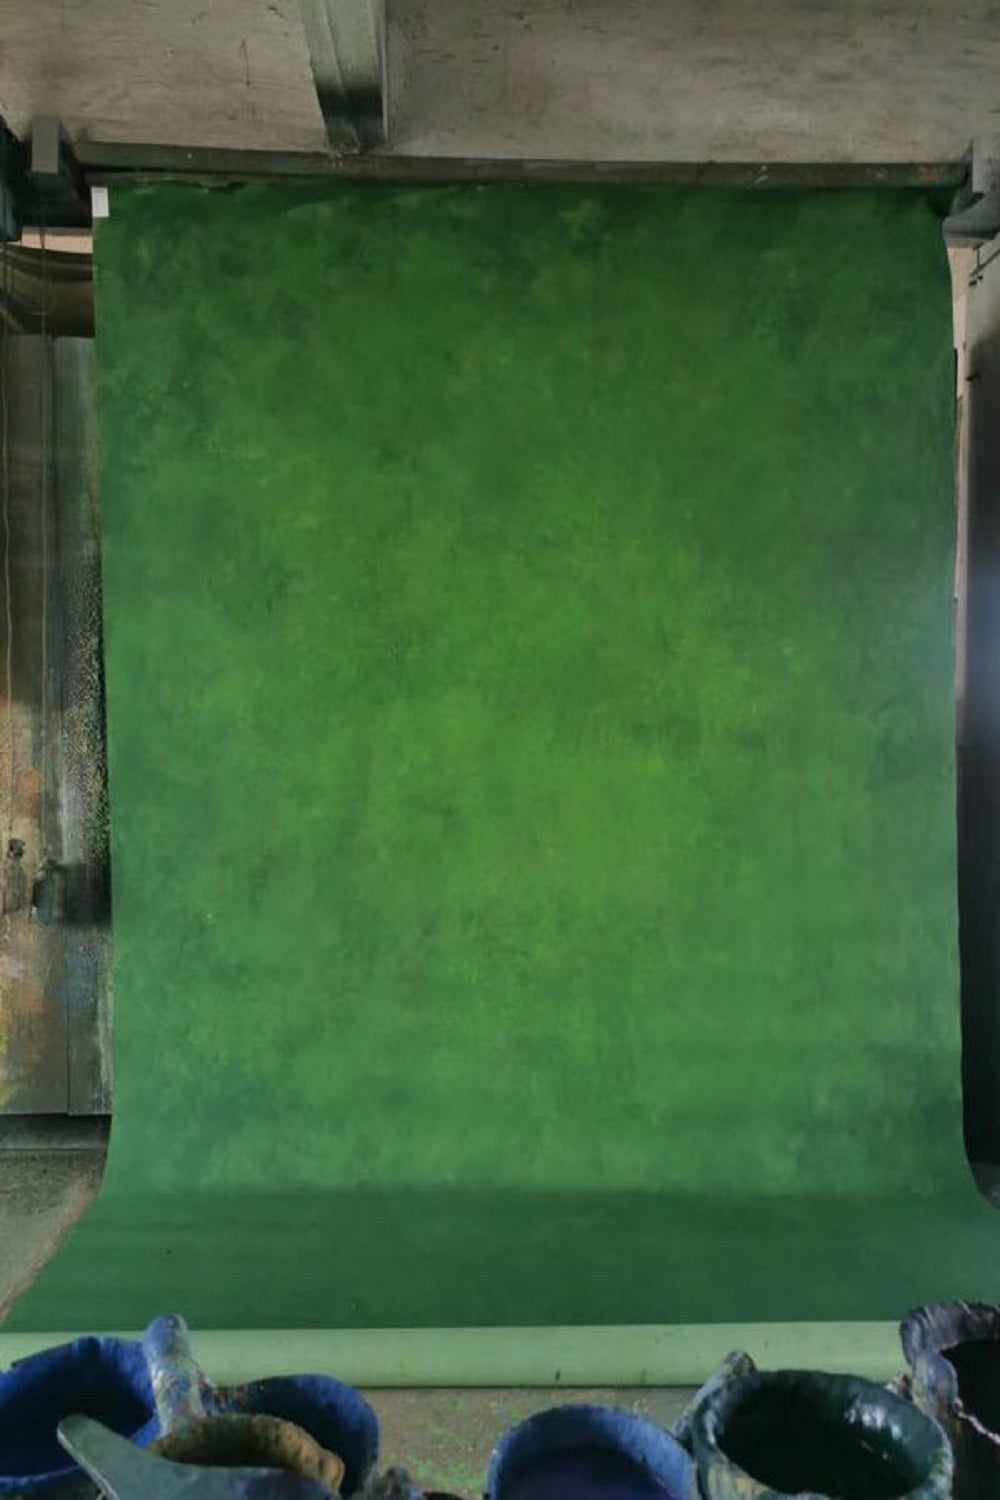 Clotstudio Abstract Deep Green Soft Texture Hand Painted Canvas Backdrop #clot 67-Low texture-CLOT STUDIO-custom hand painted canvas studio photo backdrops handmade photography backgrounds